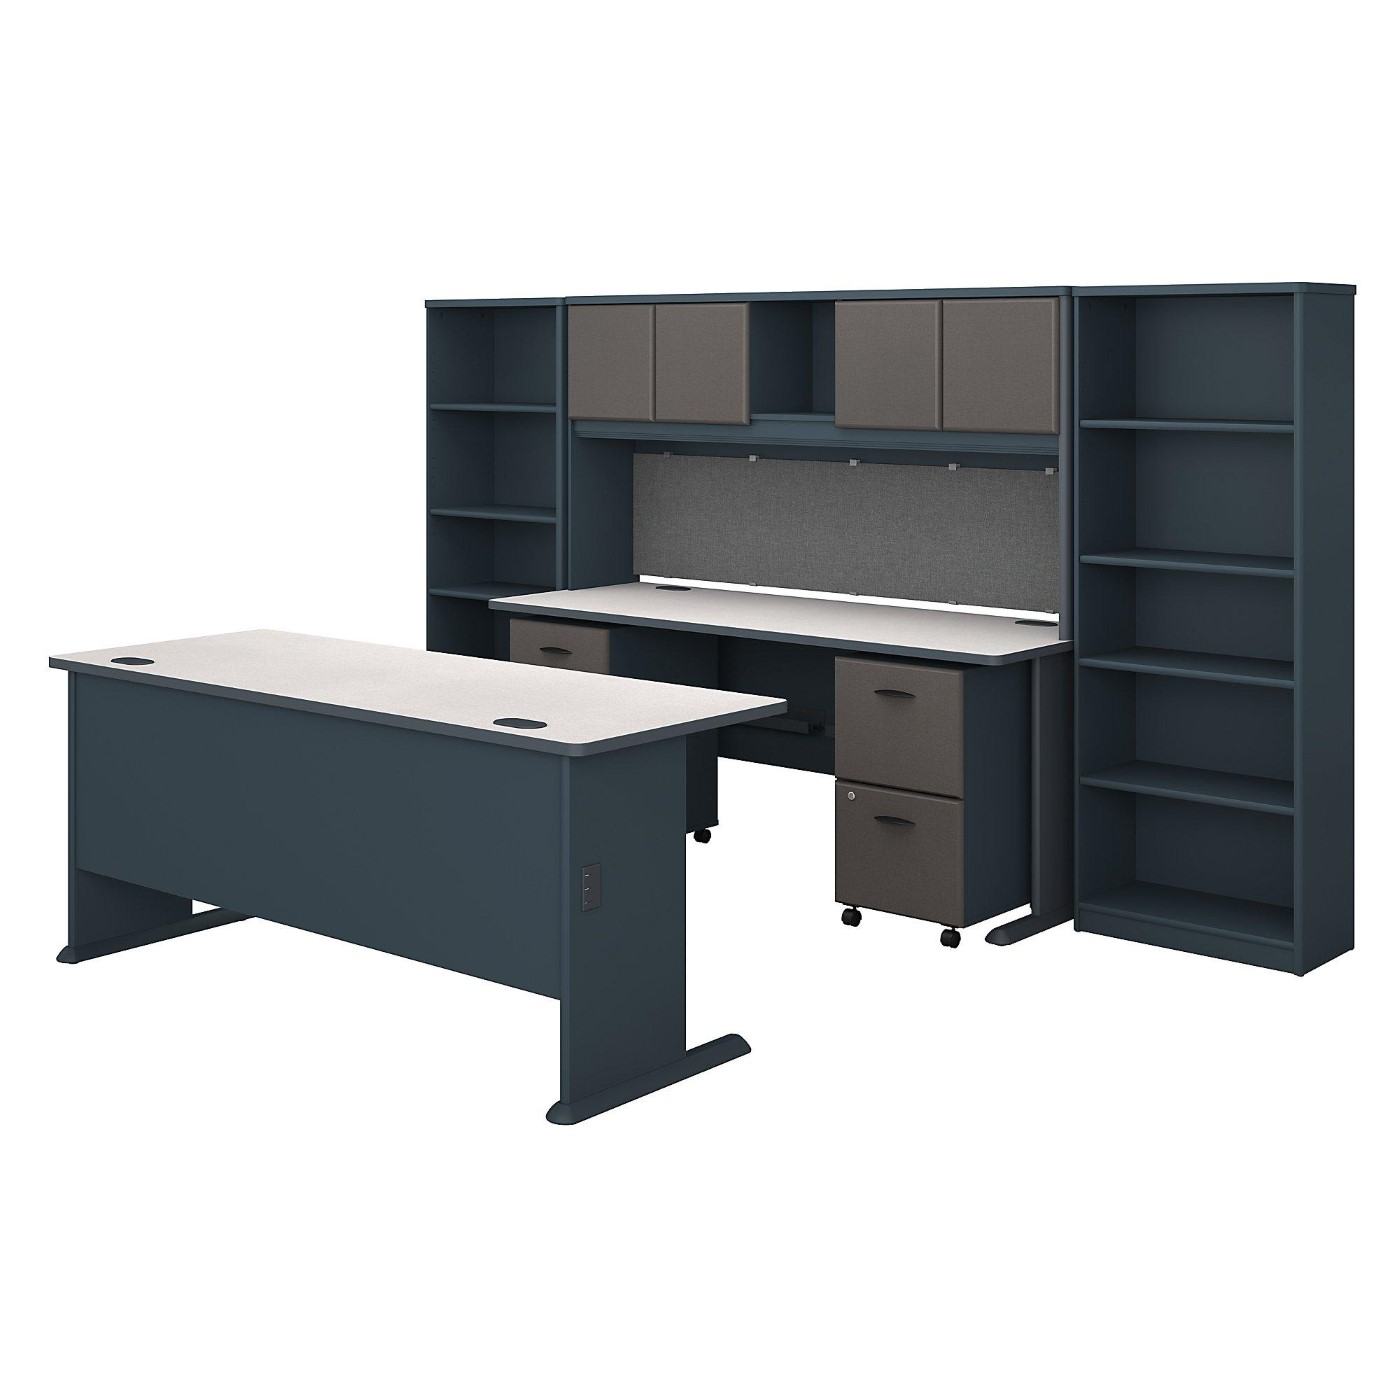 BUSH BUSINESS FURNITURE SERIES A 72W DESK WITH CREDENZA, HUTCH, BOOKCASES AND STORAGE. FREE SHIPPING</font></b></font></b>&#x1F384<font color=red><b>ERGONOMICHOME HOLIDAY SALE - ENDS DEC. 17, 2019</b></font>&#x1F384